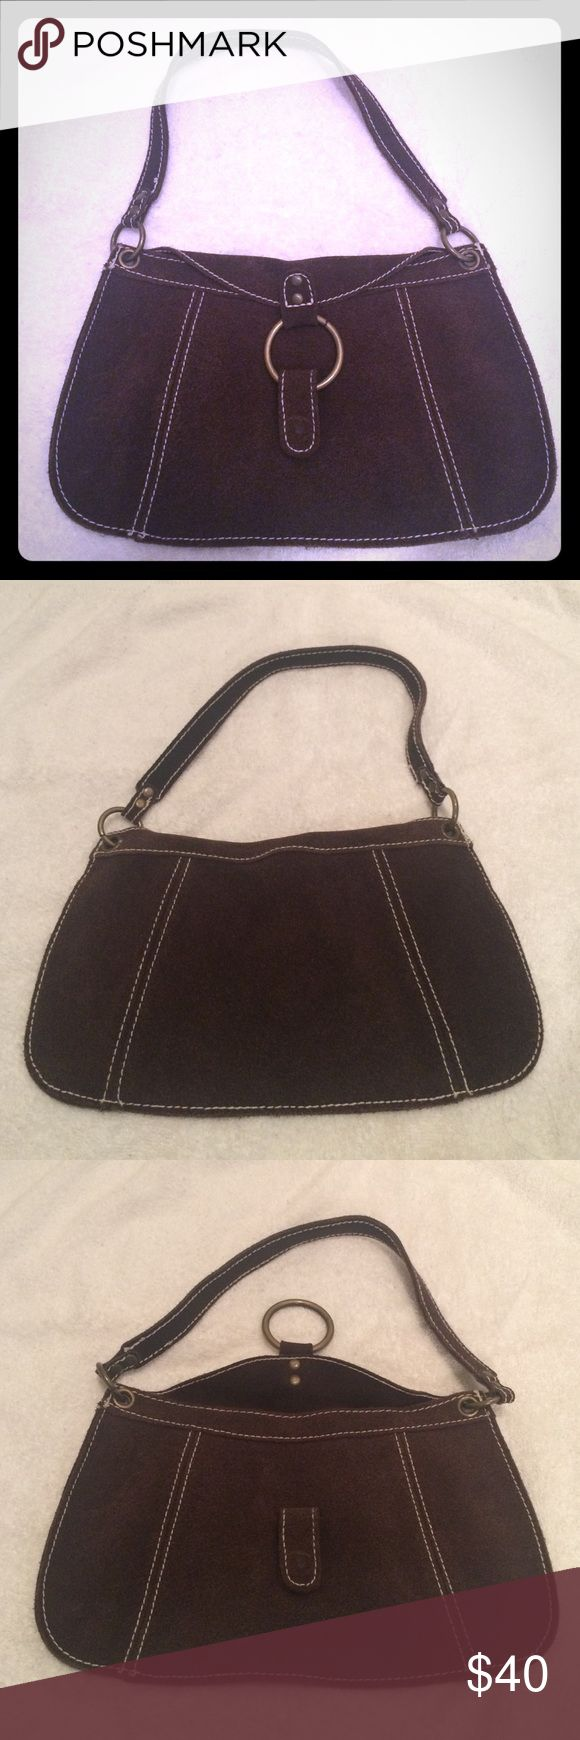 GAP Handbag Soft leather clutch handbag! This is a great accent piece to a simple spring outfit! No signs of wear only used it a couple of times. Offers Accepted! #LikeNew GAP Bags Clutches & Wristlets